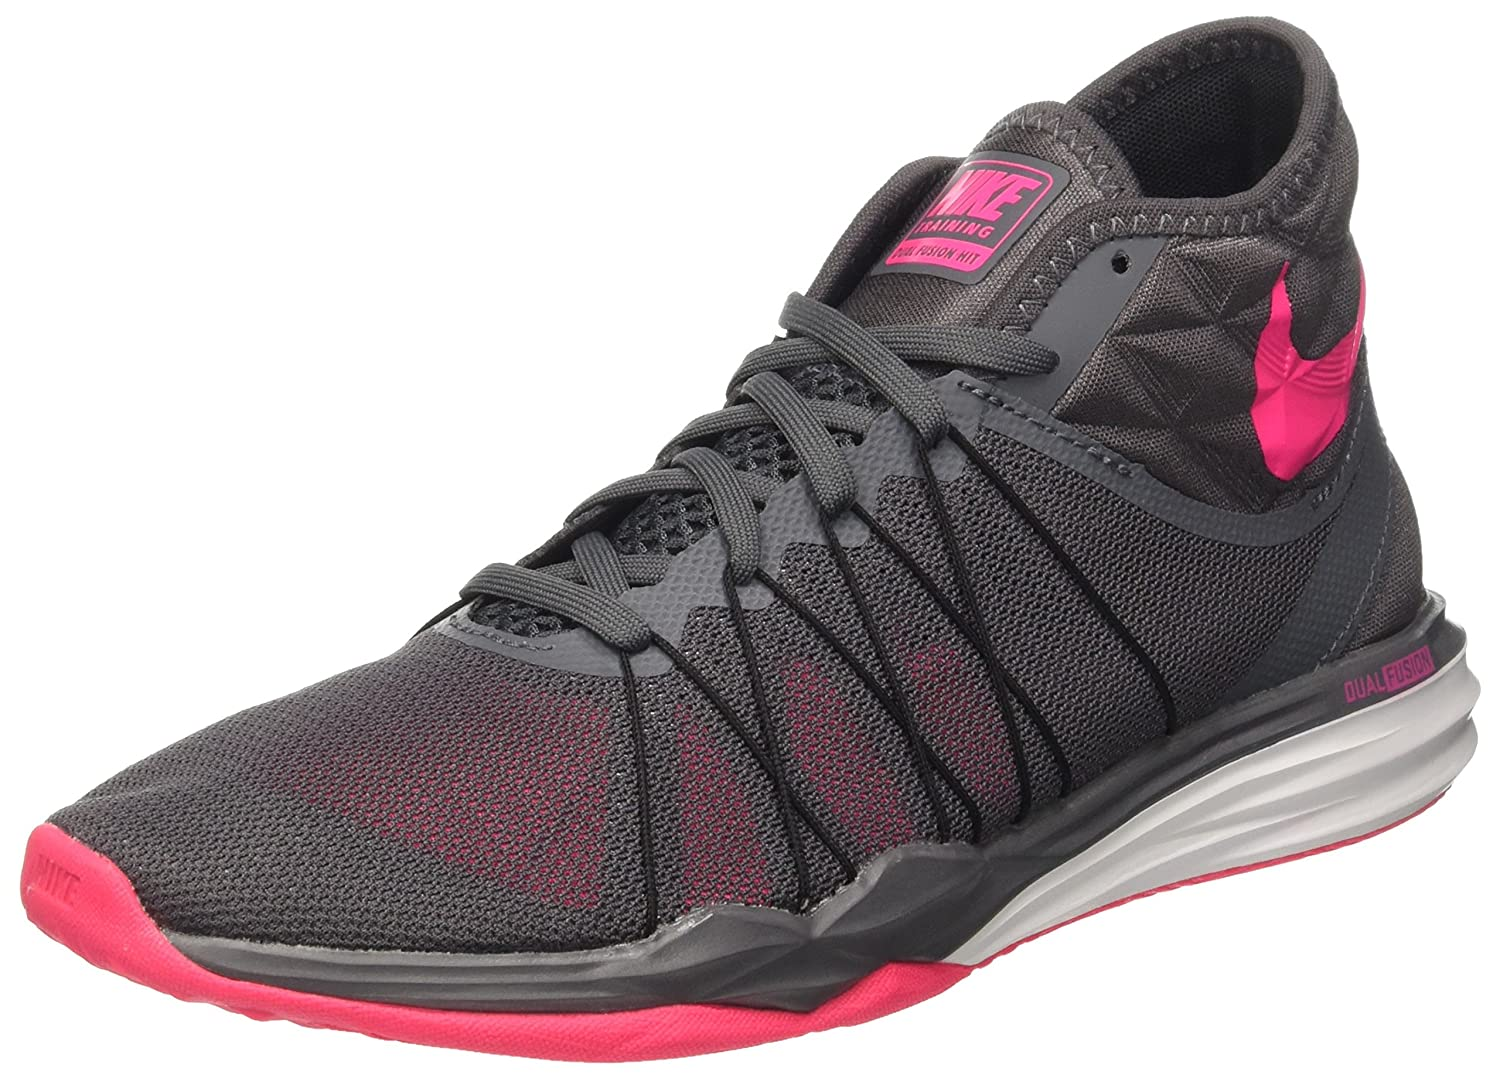 Nike W Dual Fusion Tr Hit Mid, Women's Trainers: Amazon.co.uk: Shoes & Bags